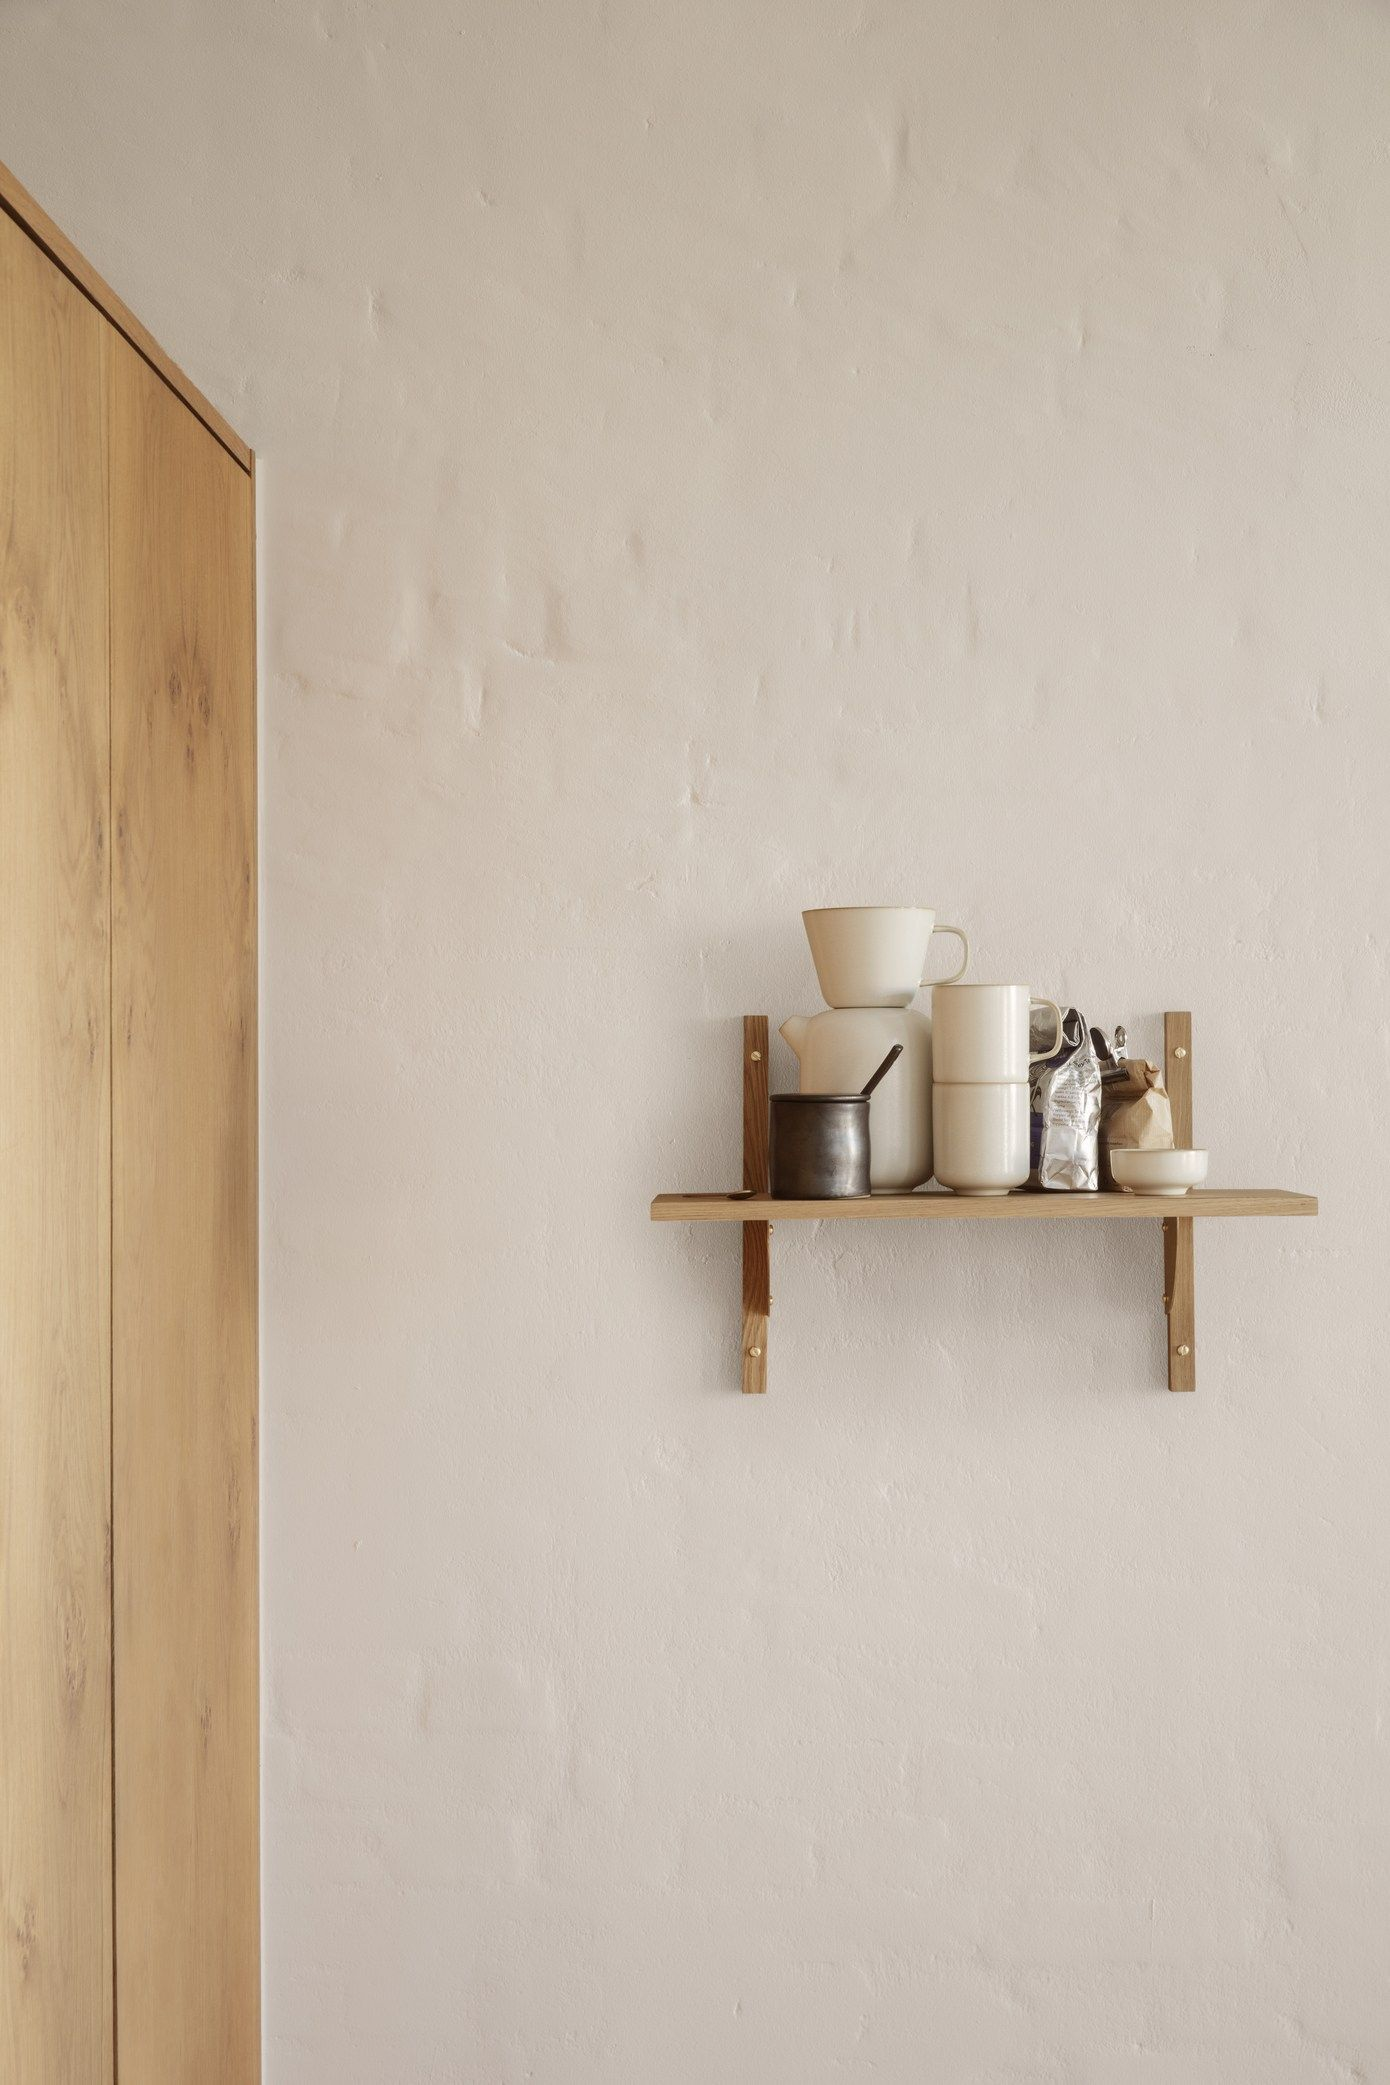 Embracing The Beige Interior Trend With Ferm Living Ss20 Collection Small Wooden Shelf Solid Oak Table Interior